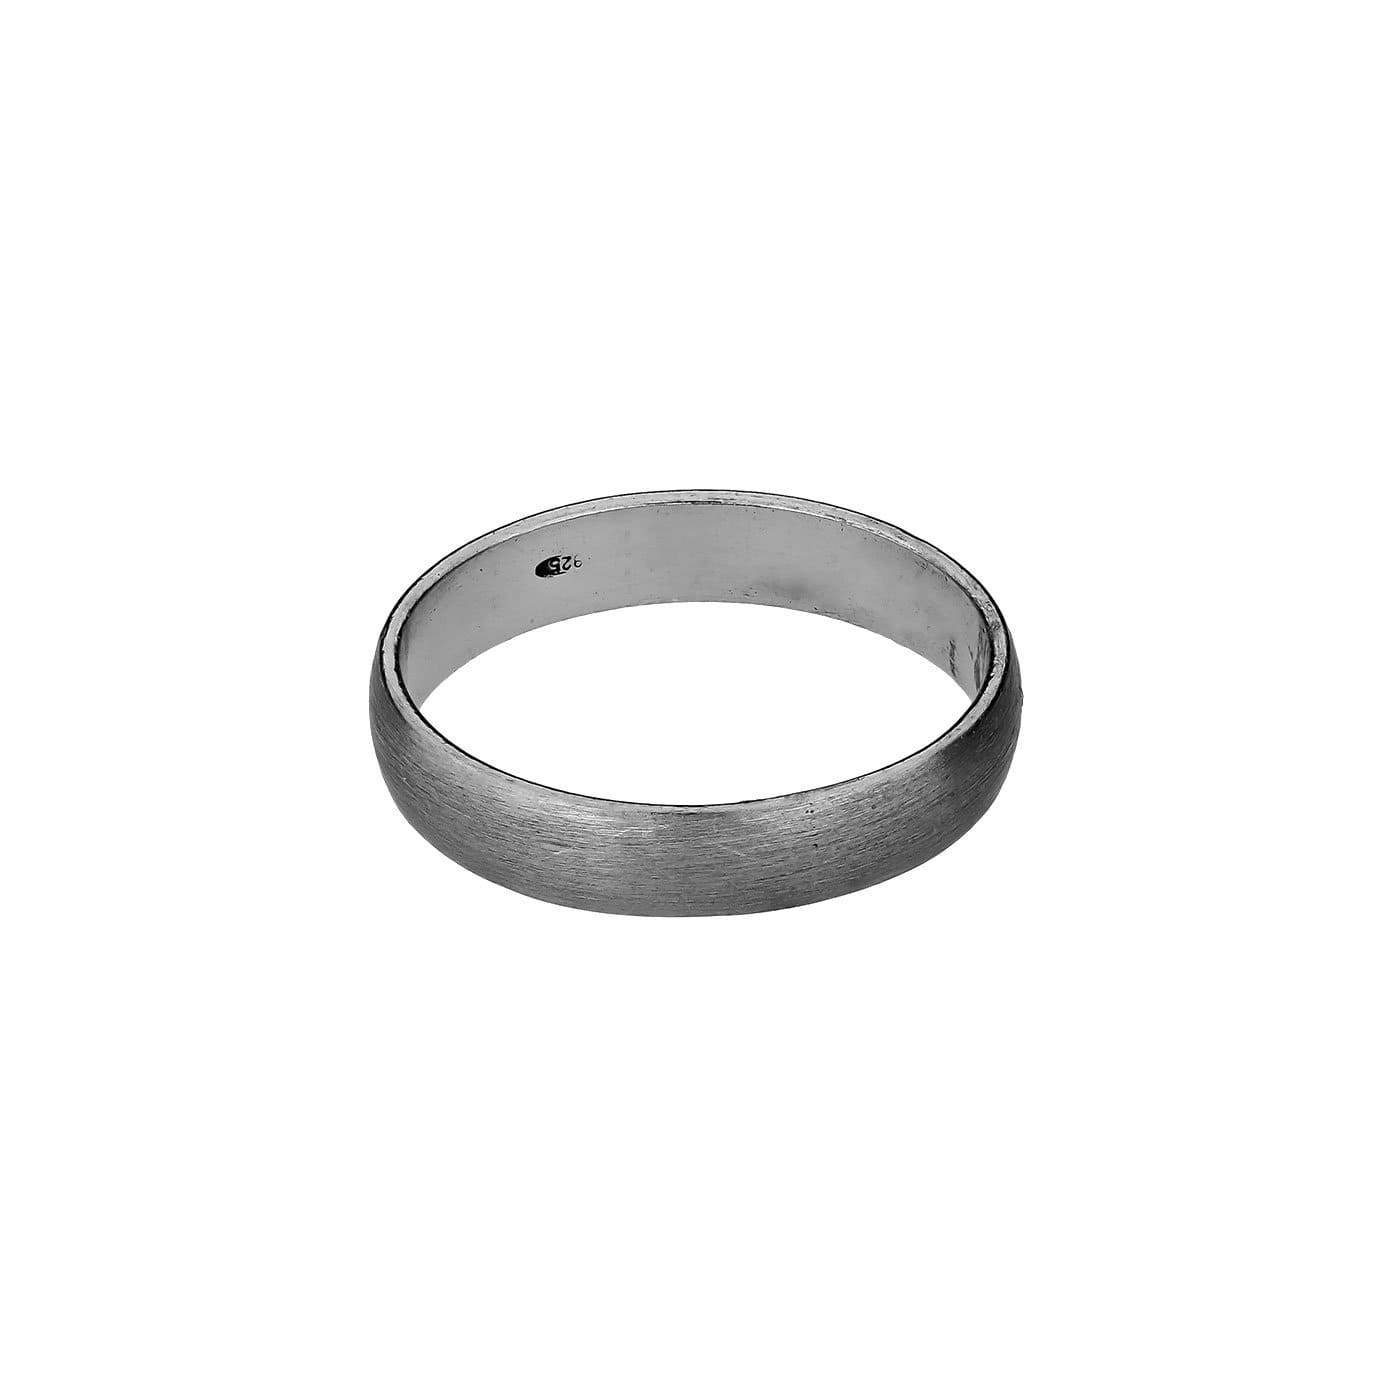 Simple Silver Ring - Satin Finish